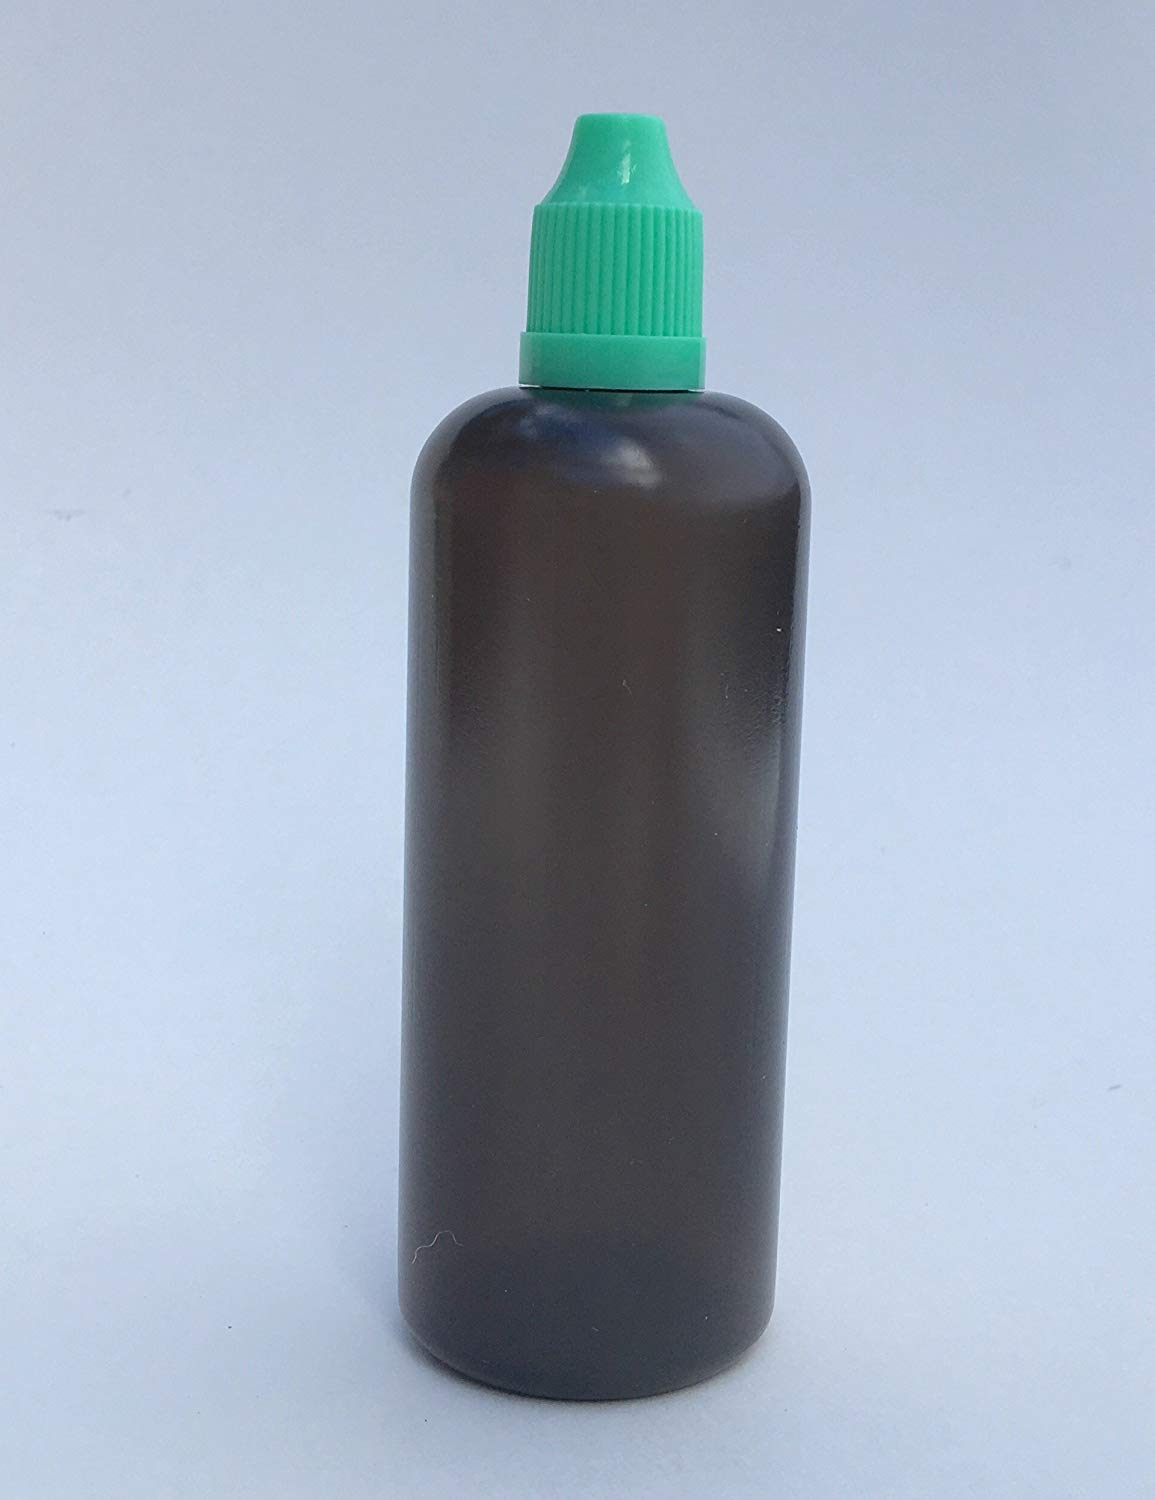 U-Need-A-Bottle (1) 4 oz Dark Black Plastic Bottle - 120 ml - BPA FREE - LDPE PE - EASY SQUEEZE Liquid Dropper Tip - Small Empty ROUND, Best For Tincture E Cig & Juice w/ Childproof Cap (Green)